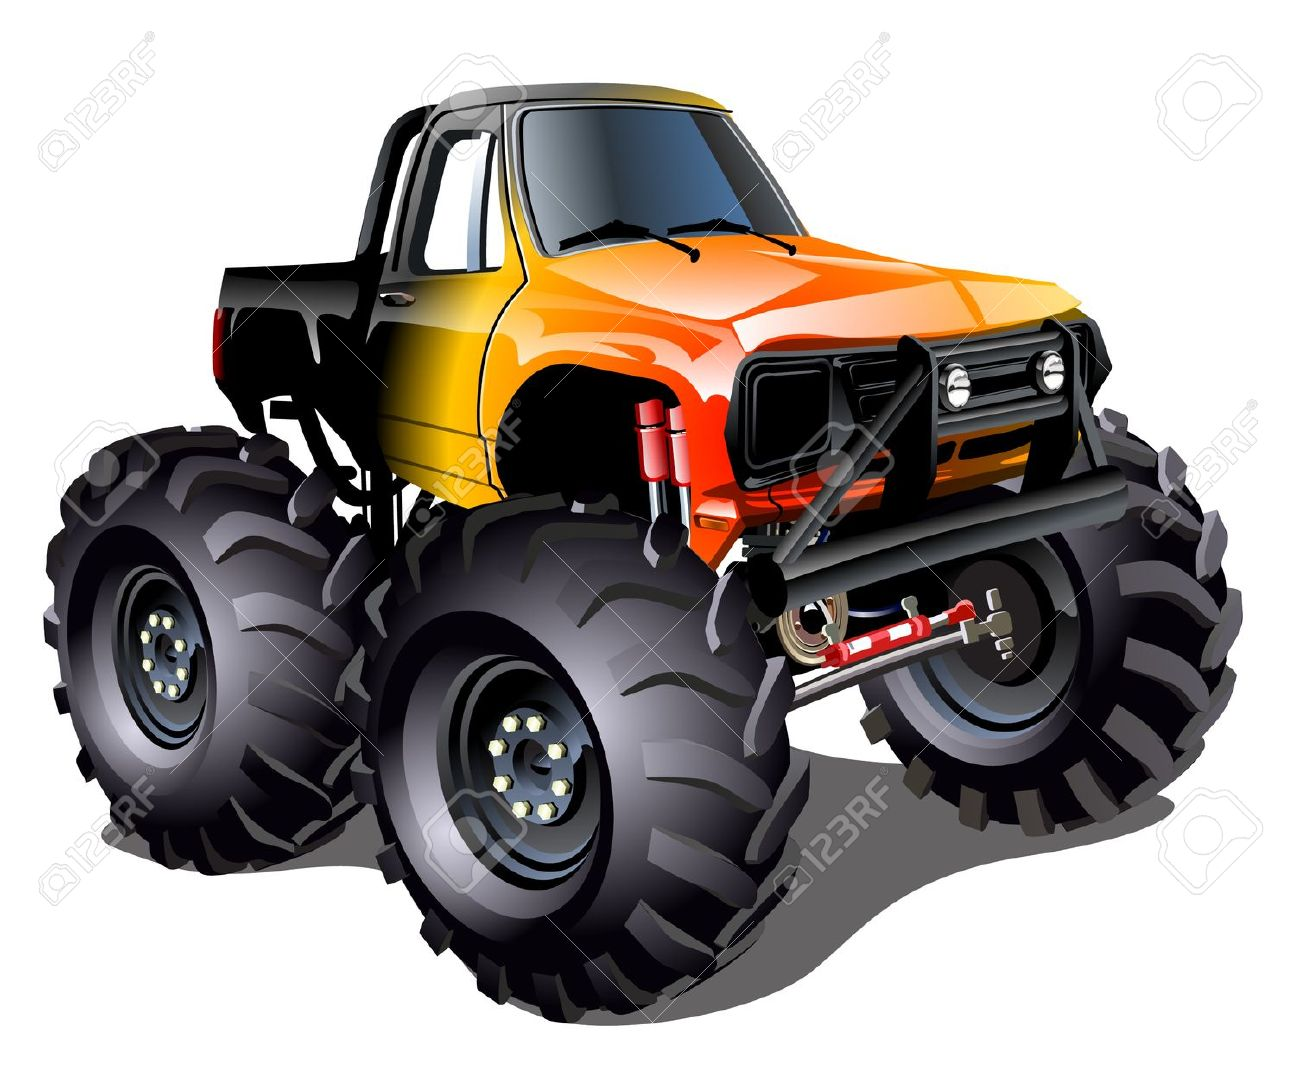 Free monster truck clipart images picture black and white library Free Monster Truck Clipart Black And White, Download Free Clip Art ... picture black and white library